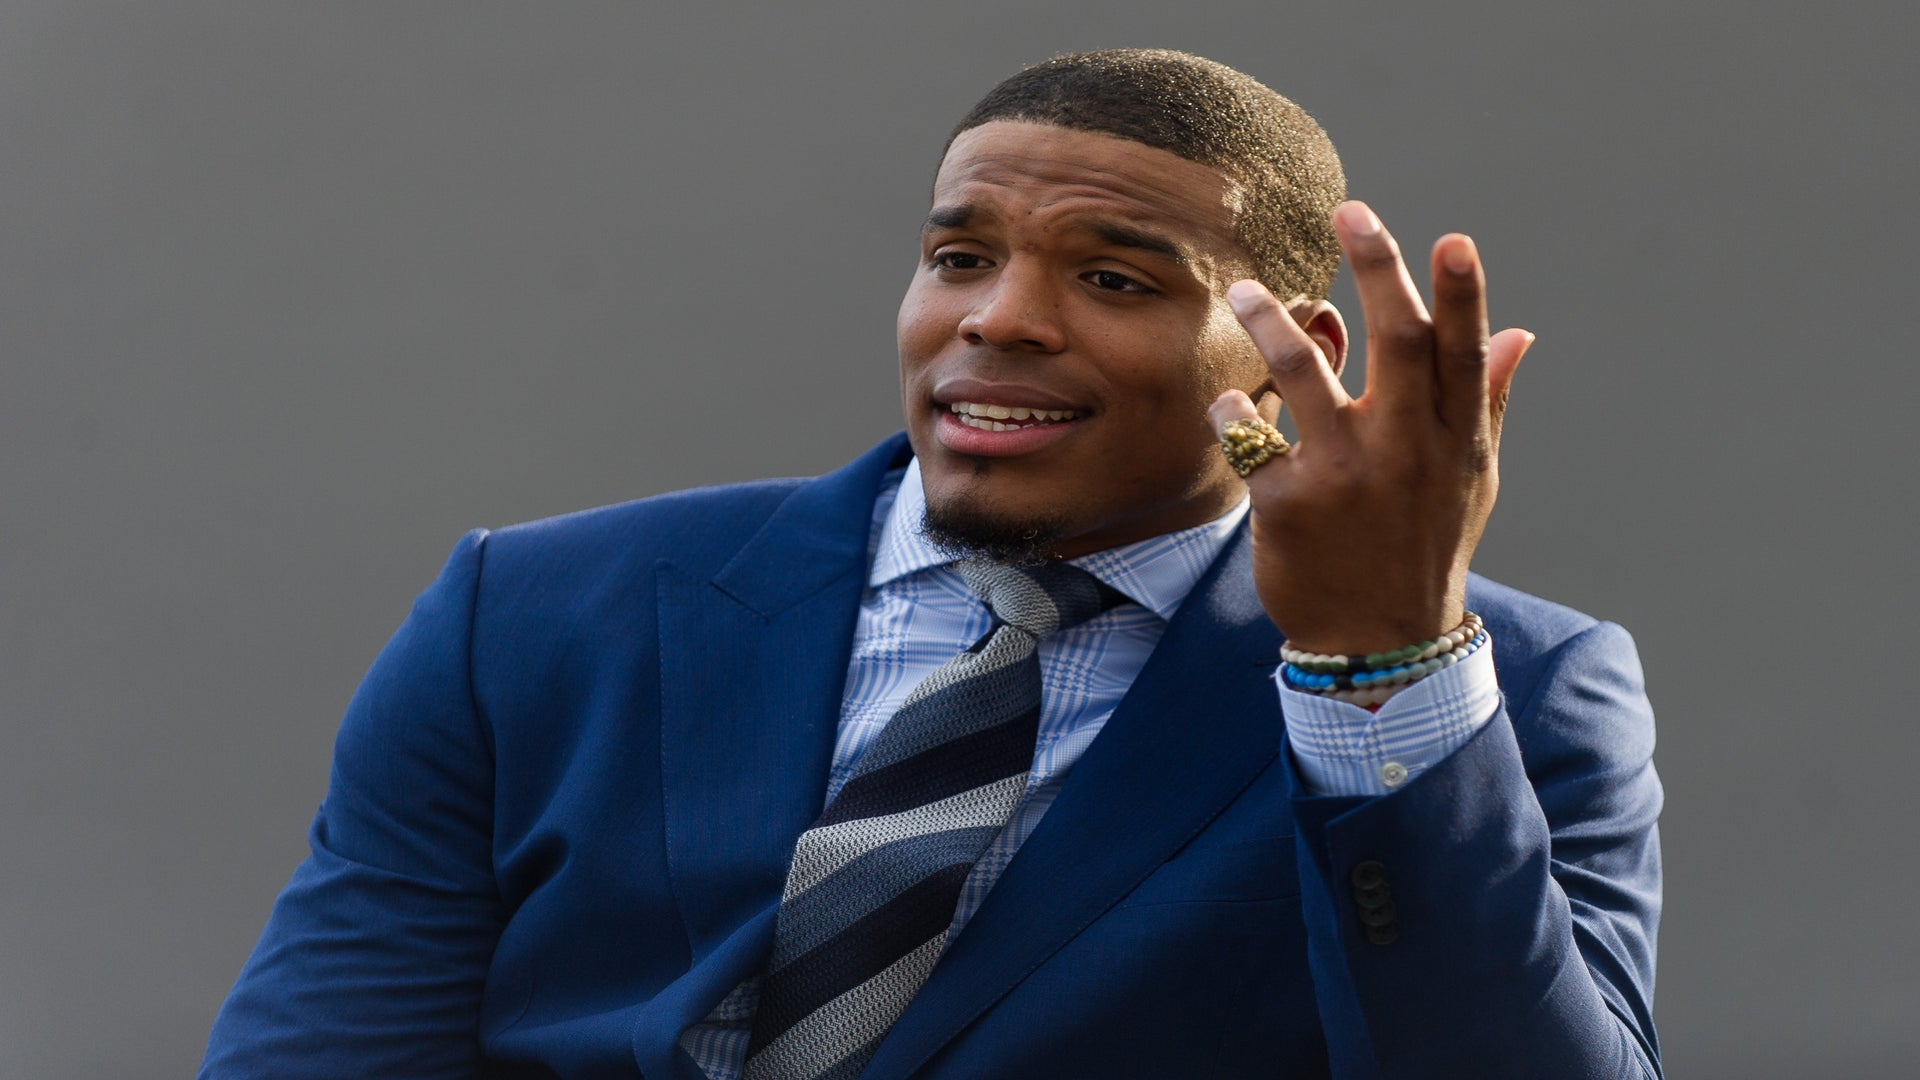 Yogurt Brand Drops Cam Newton After Sexist Remark